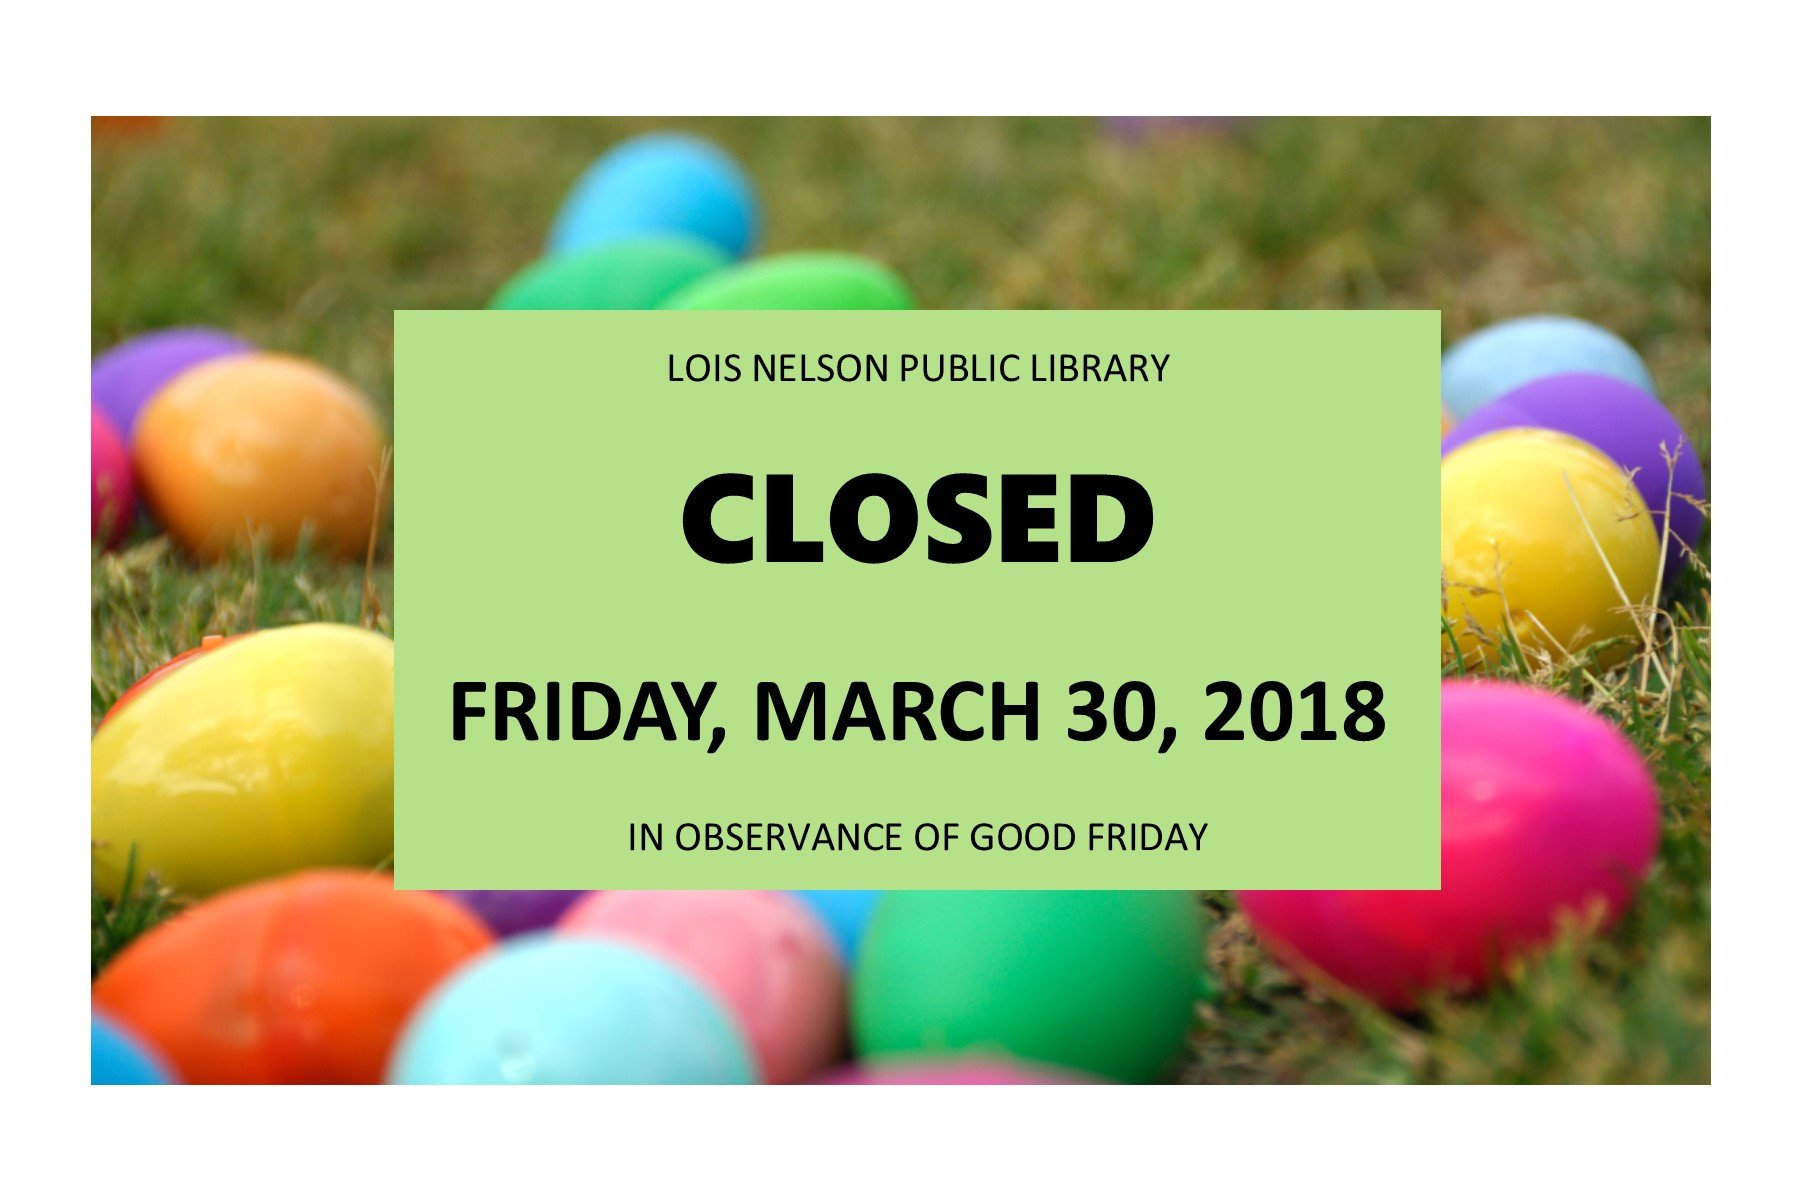 Closed Good Friday Sign Library Closed Good Friday